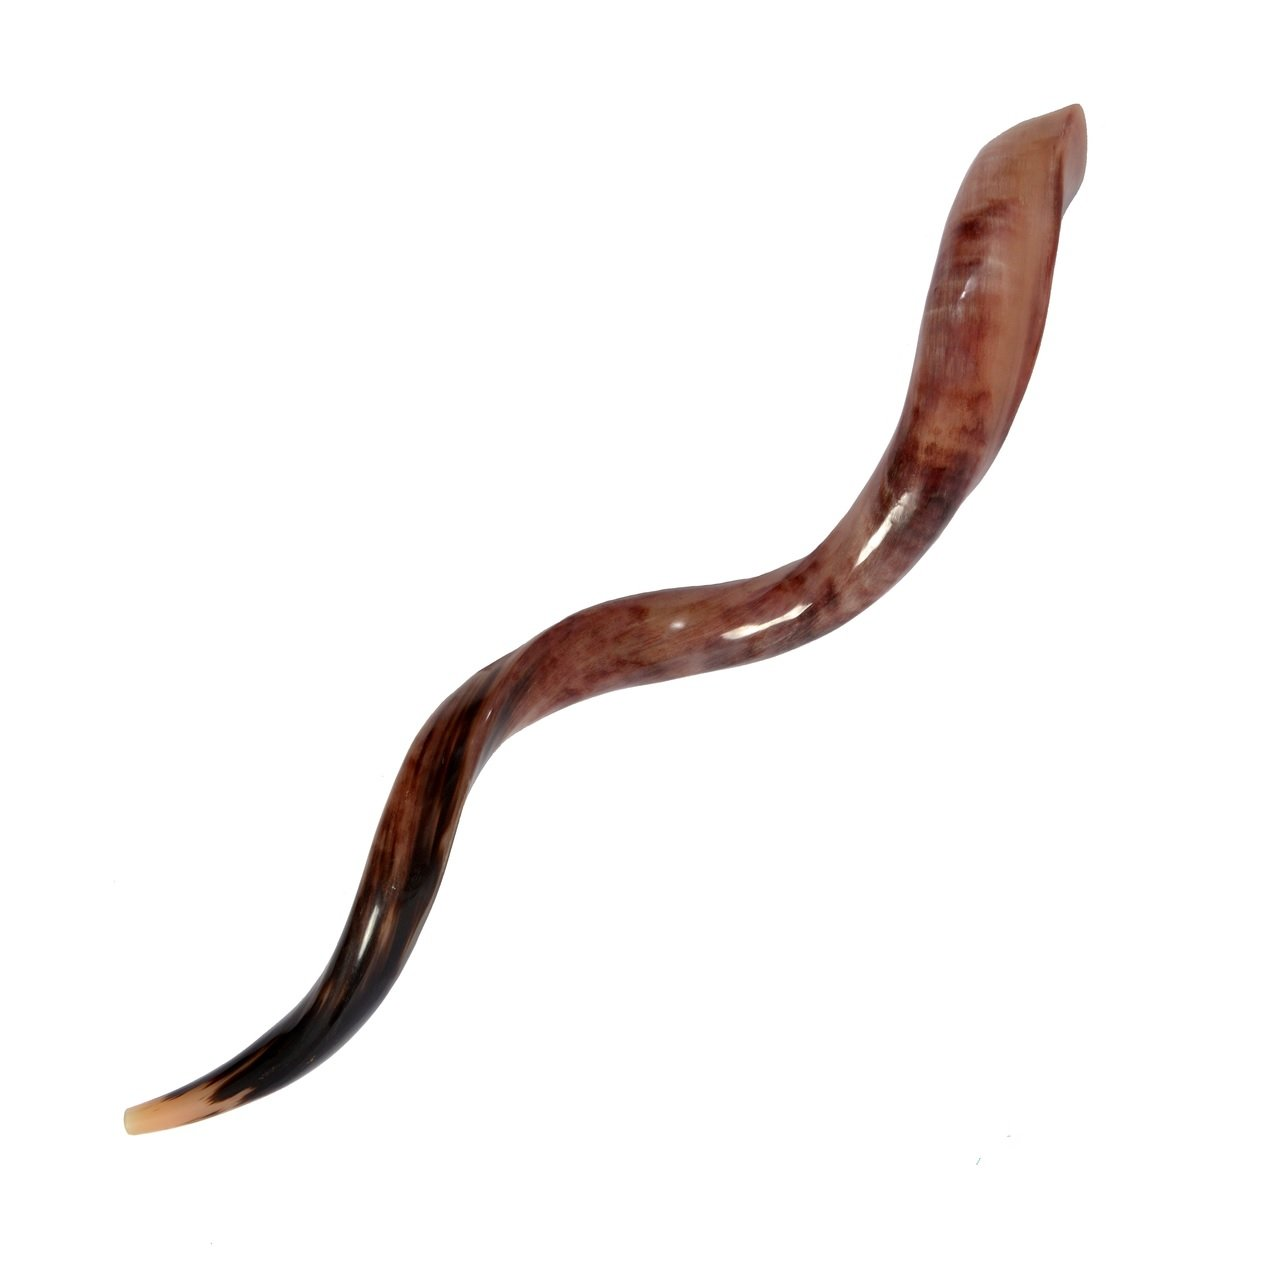 35''-37'' High Quality Yemenite Shofar Kosher & Polish + Free Bag by Kosher Factory